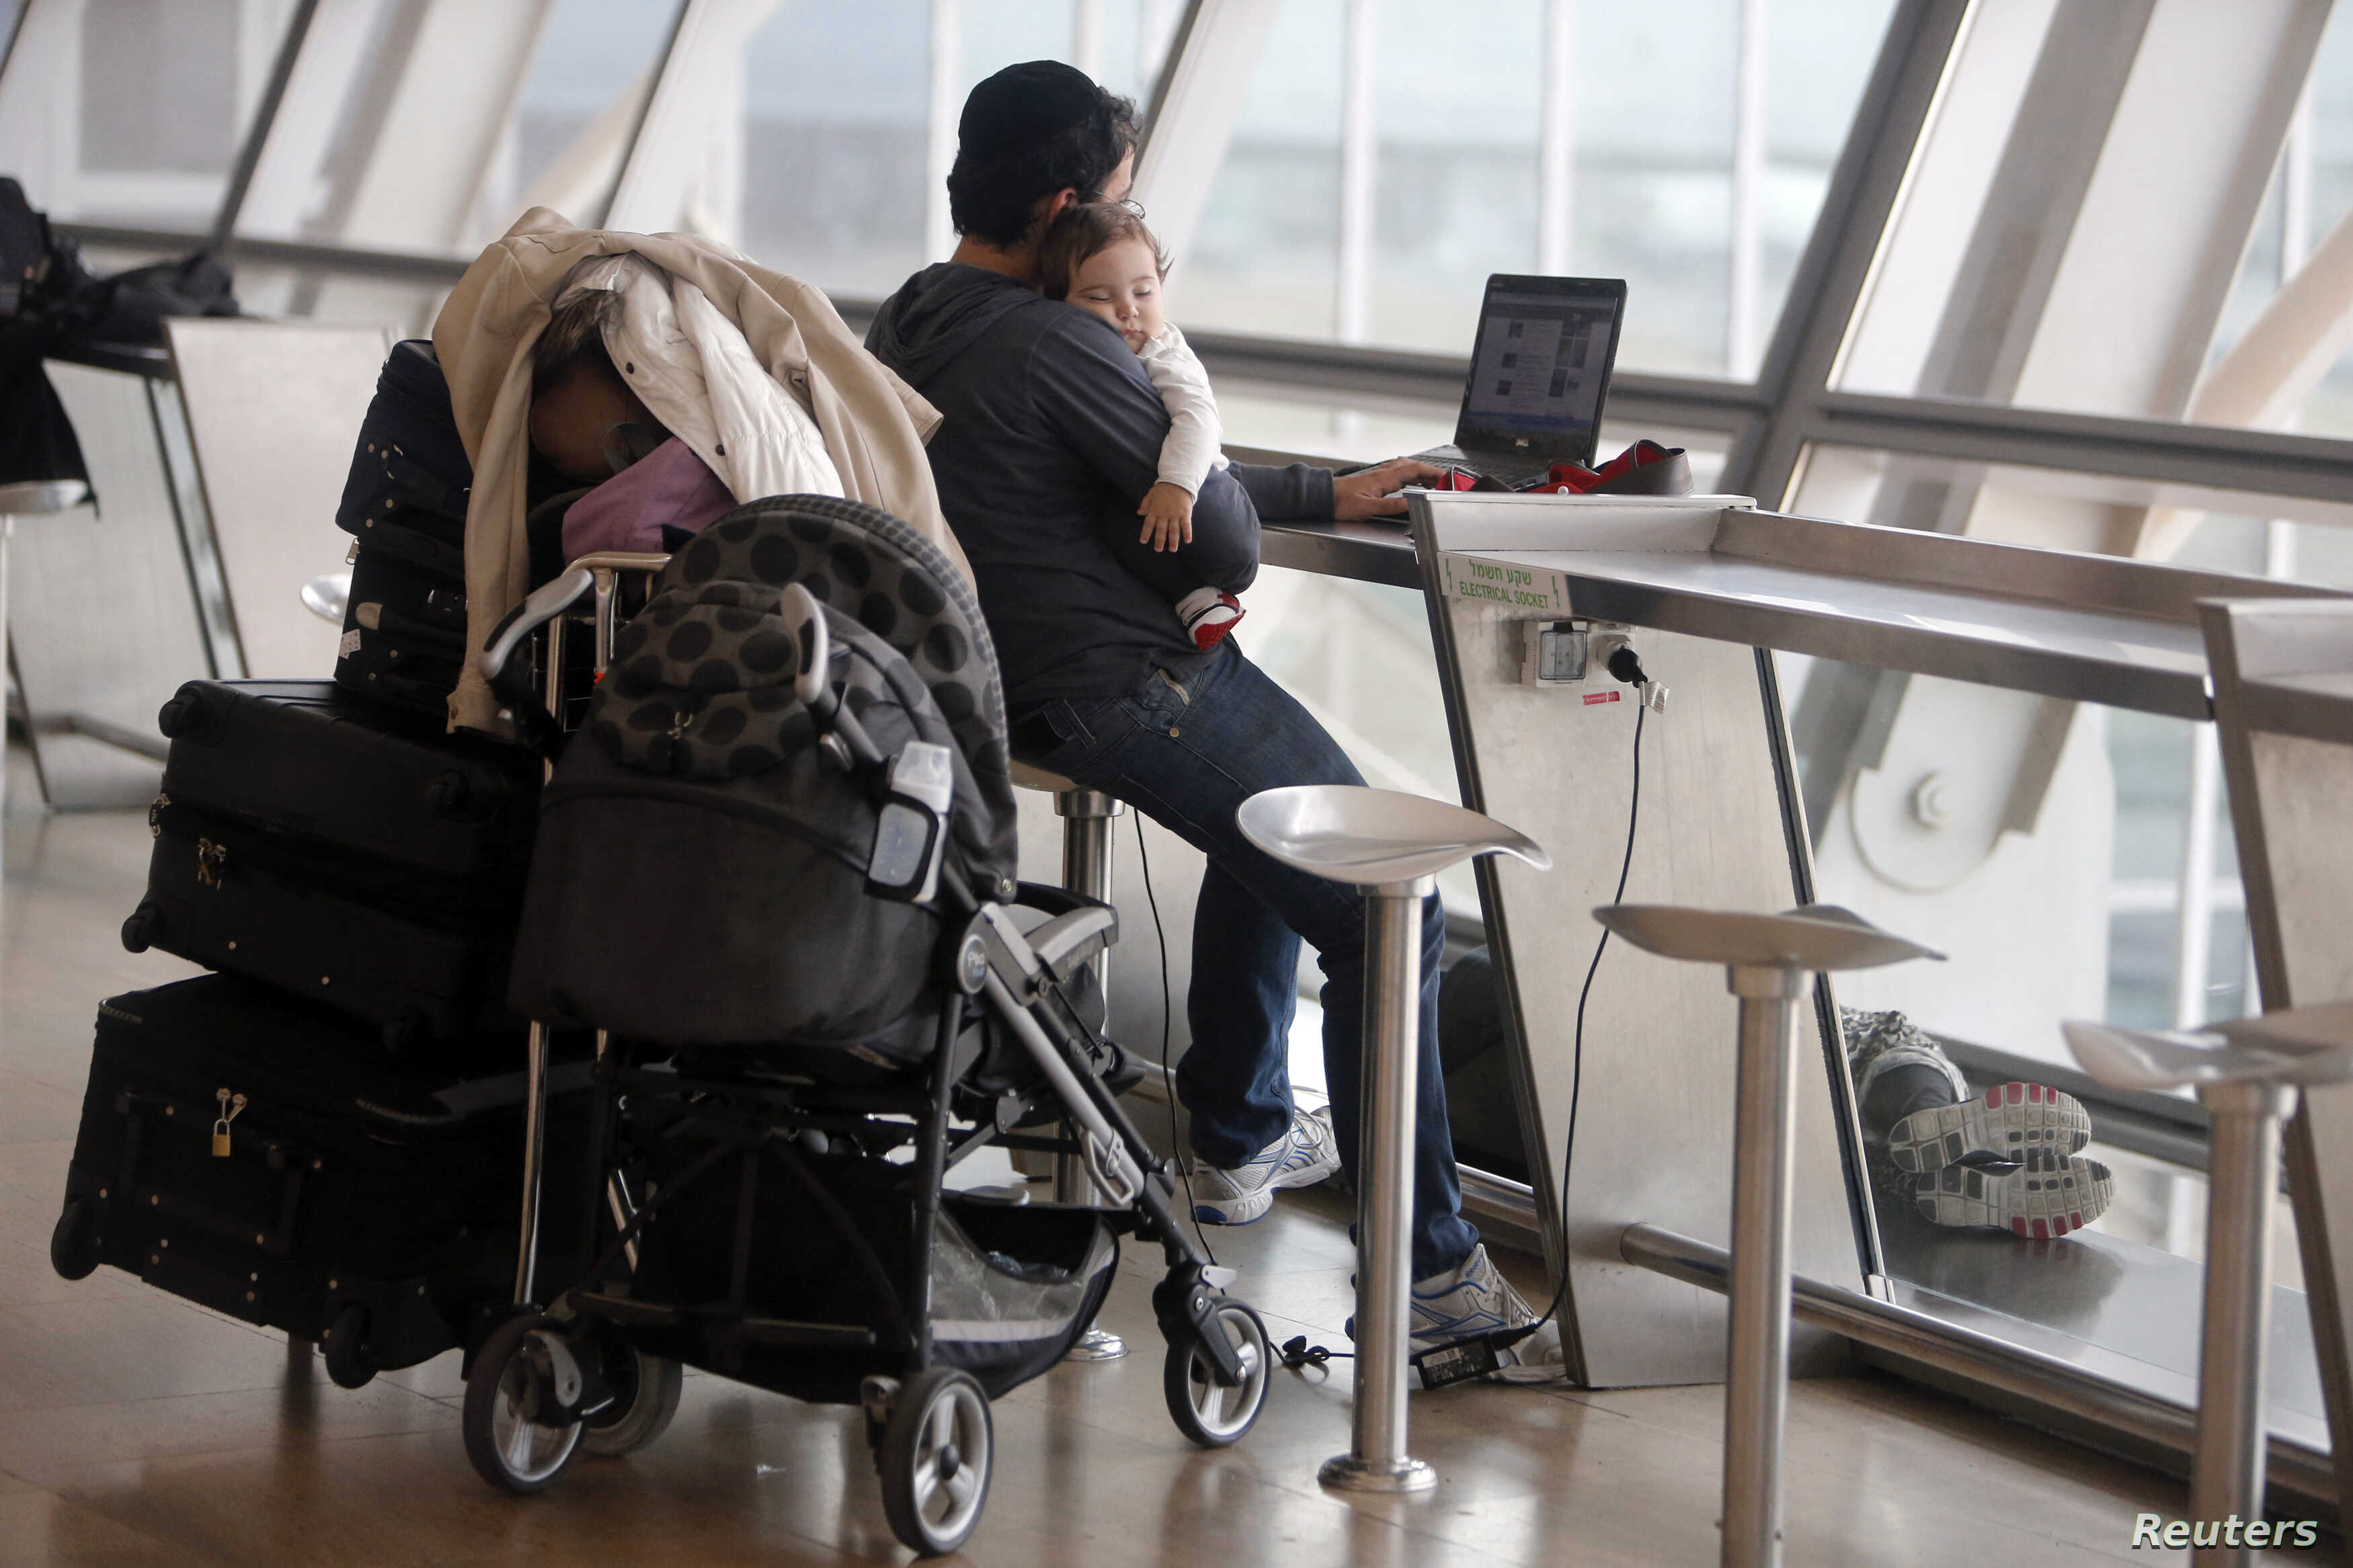 FILE - A passenger holds a baby as he uses his laptop in Israel's Ben-Gurion International Airport near Tel Aviv, April 21, 2013. Men with strollers and on playgrounds are a more common sight now than in their father's generation.